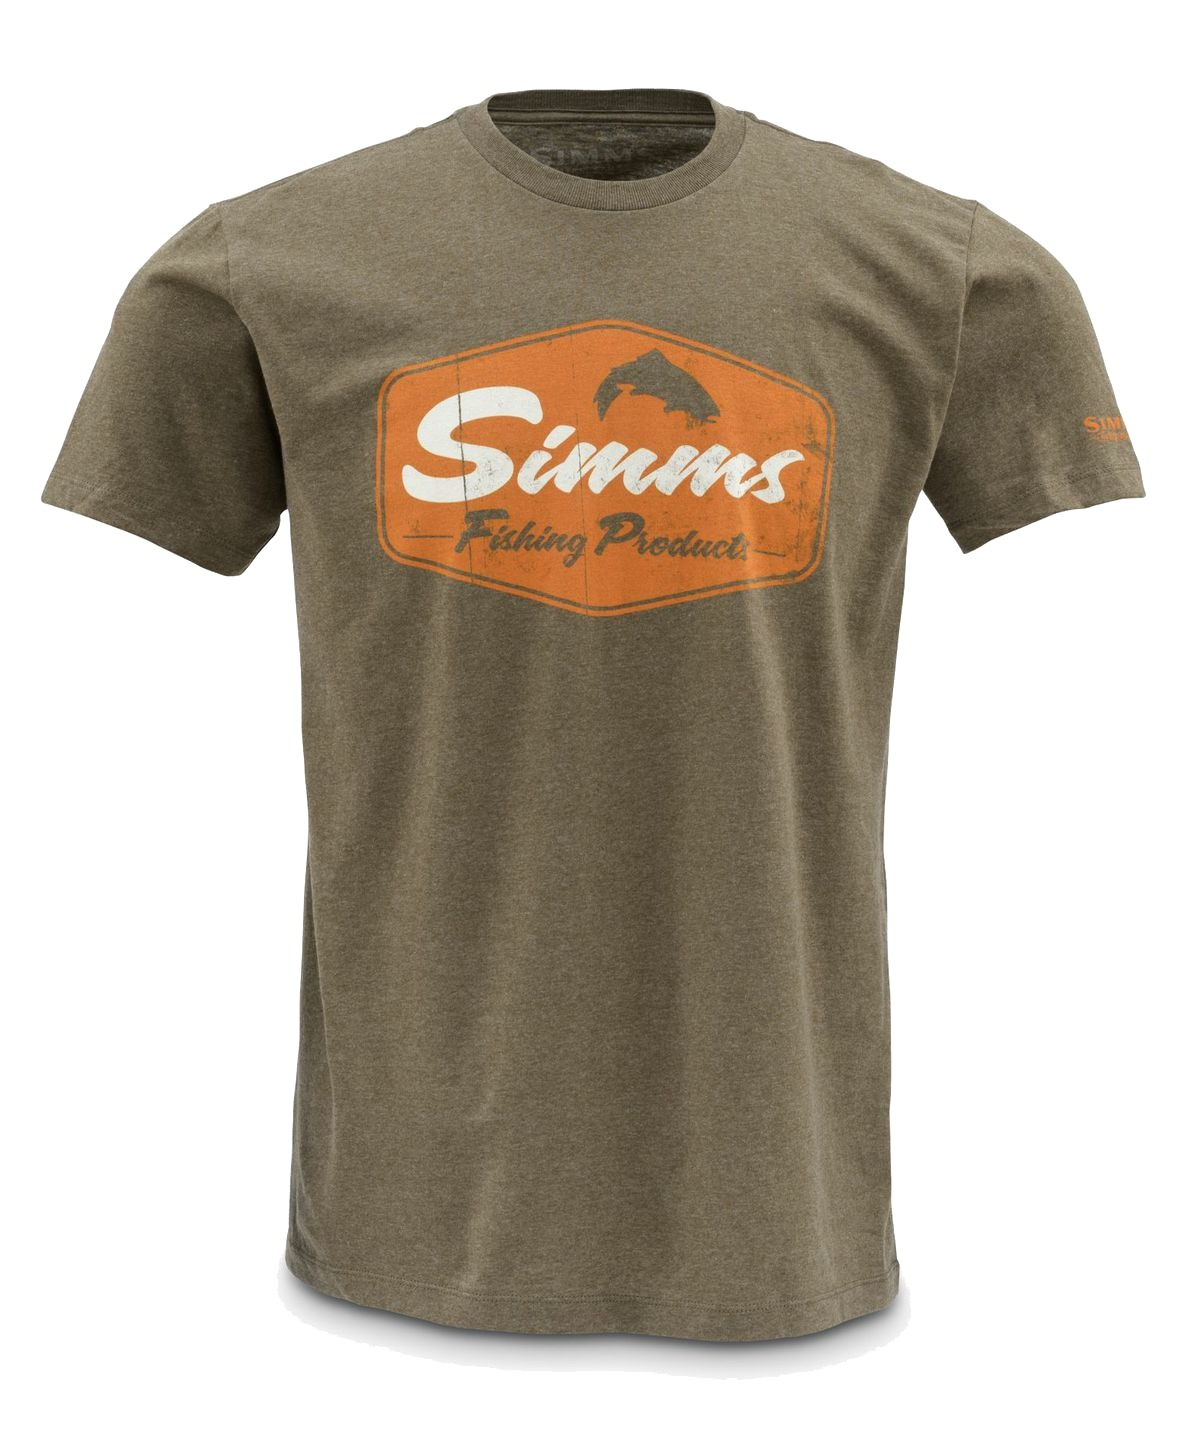 Simms fishing products t shirts glasgow angling centre for Simms fishing shirts